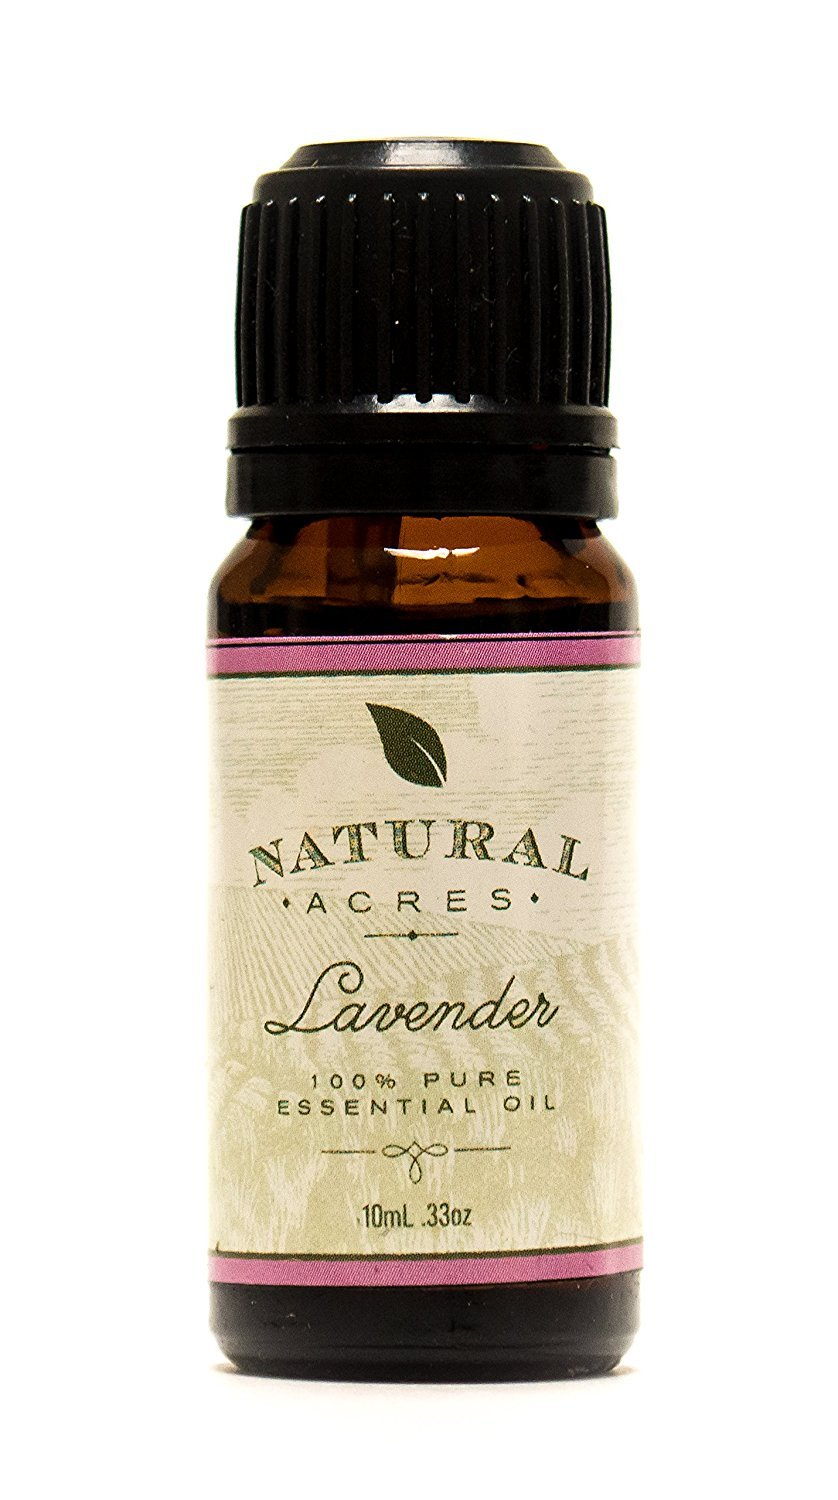 Lavender Essential Oil - 100% Pure Therapeutic Grade Lavender Oil by Natural Acres - 10ml